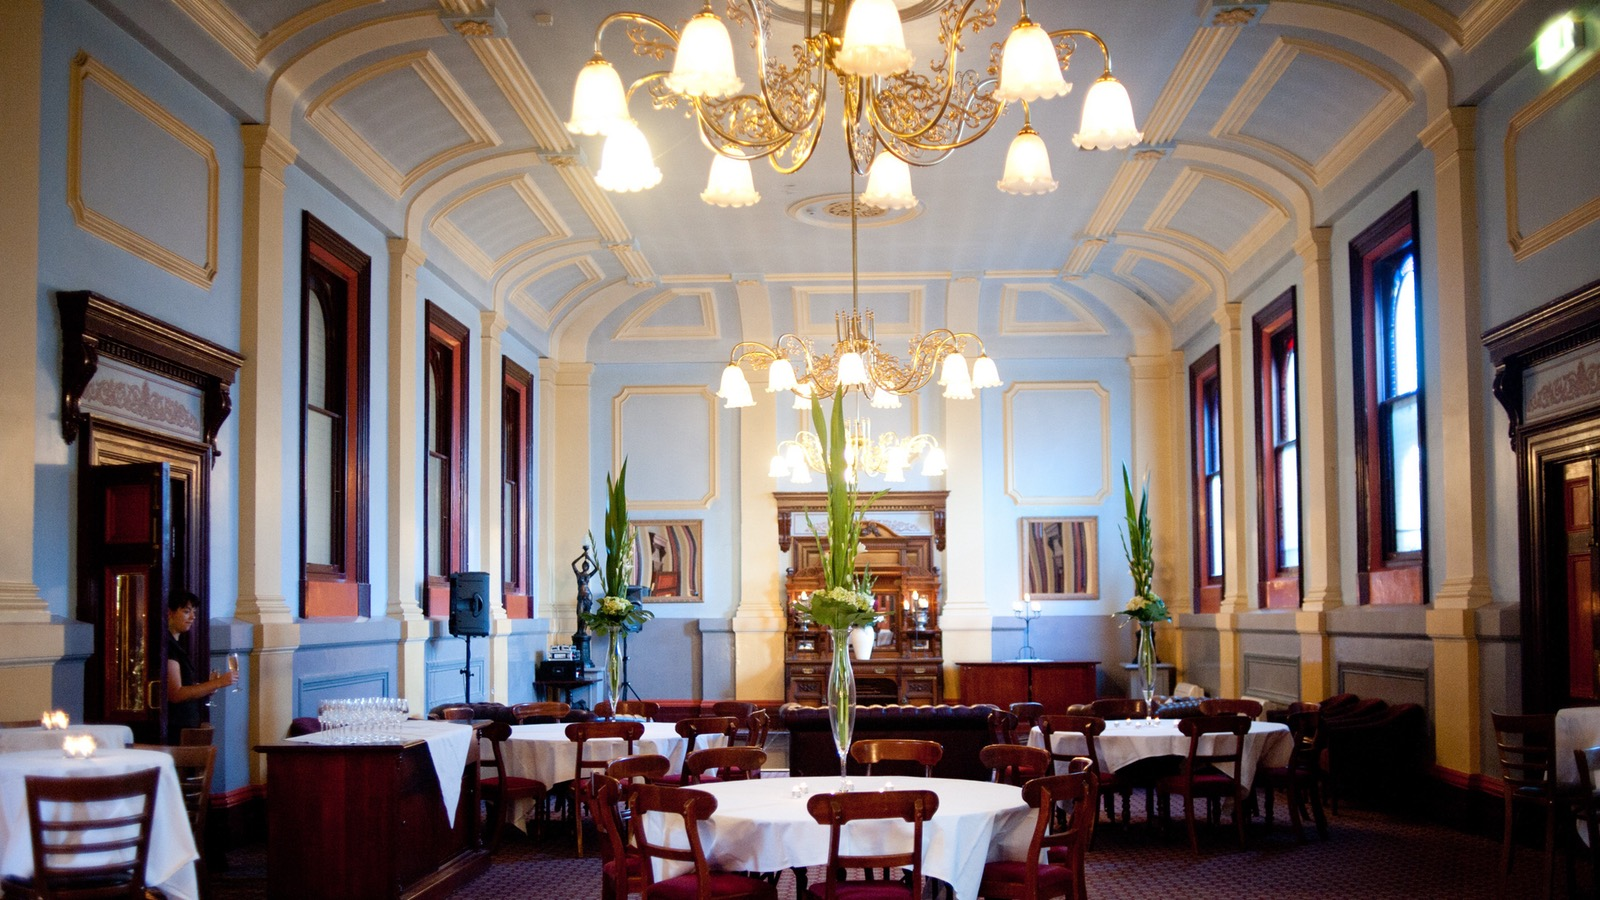 The majestic Grand Dining Room